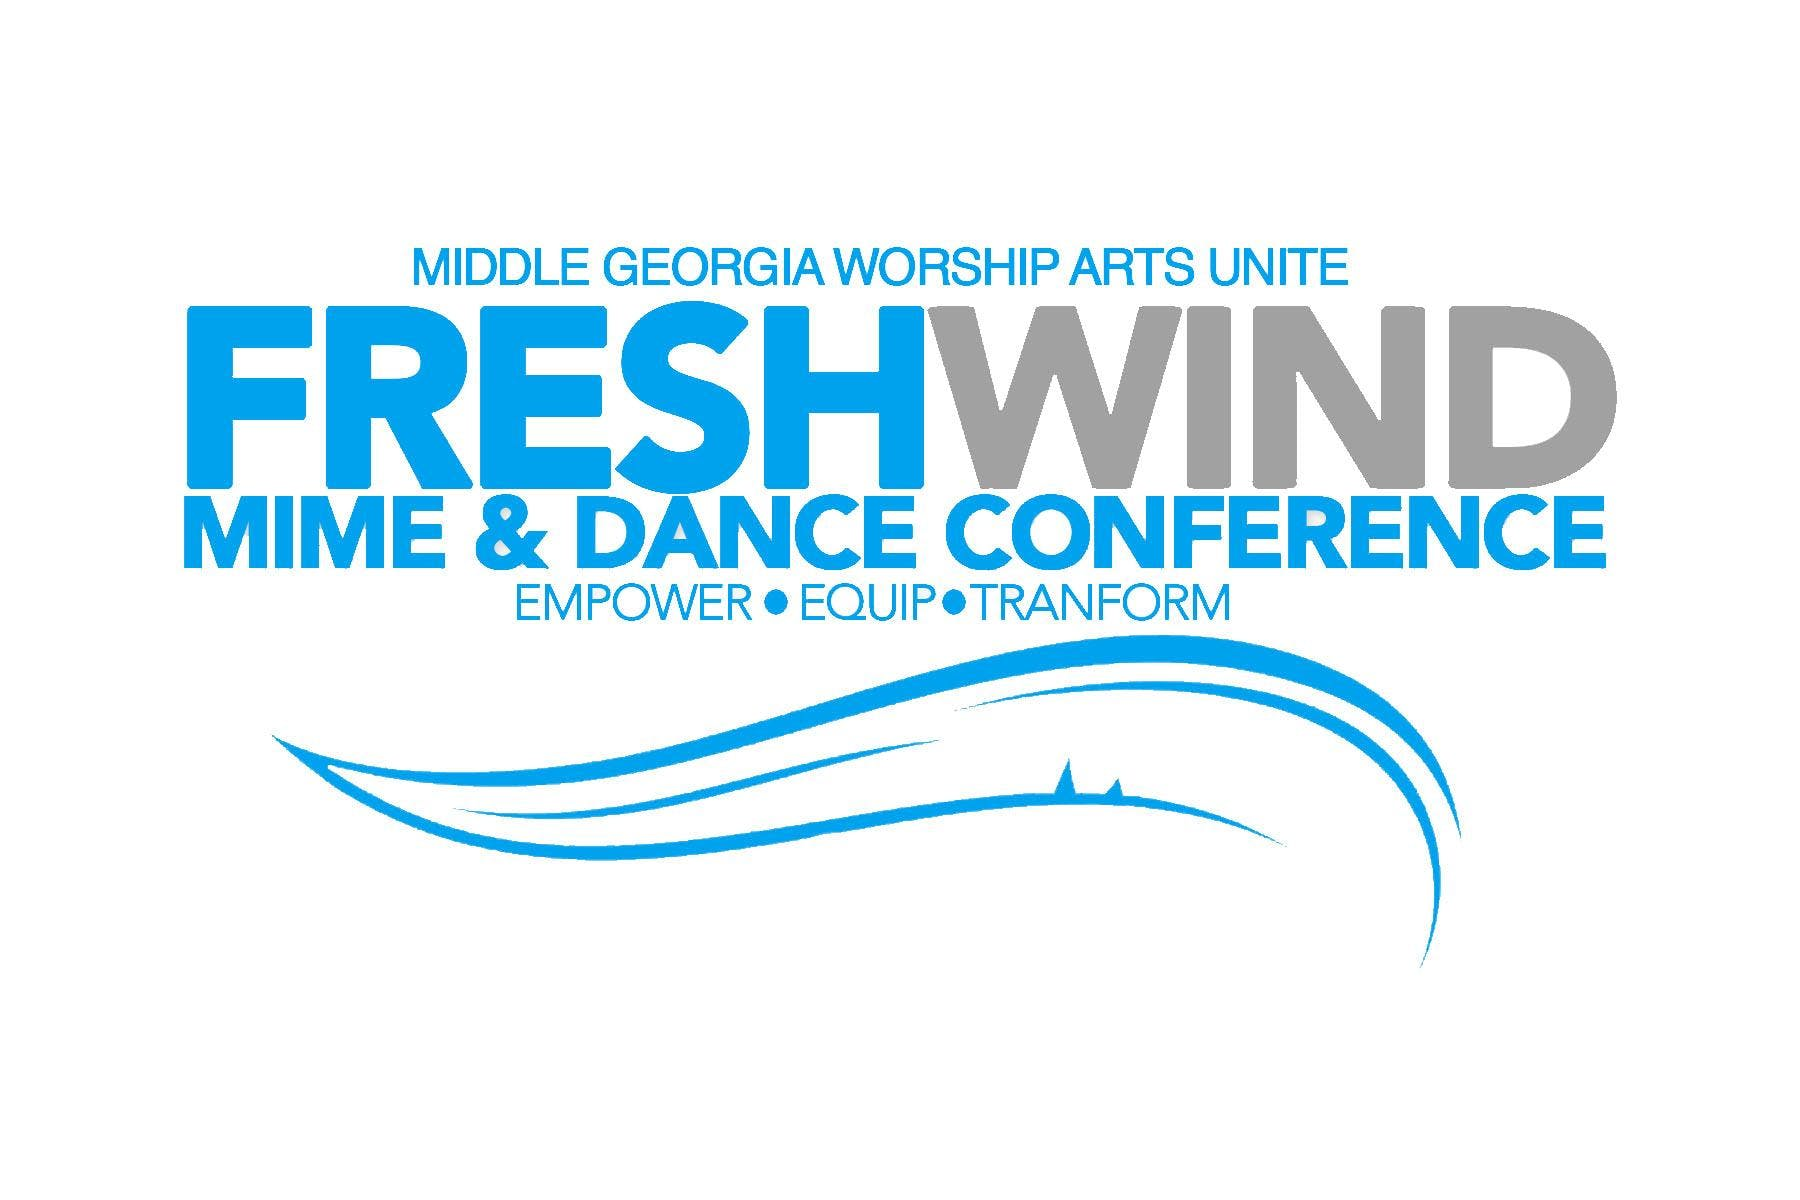 Freshwind Mime and Dance Conference